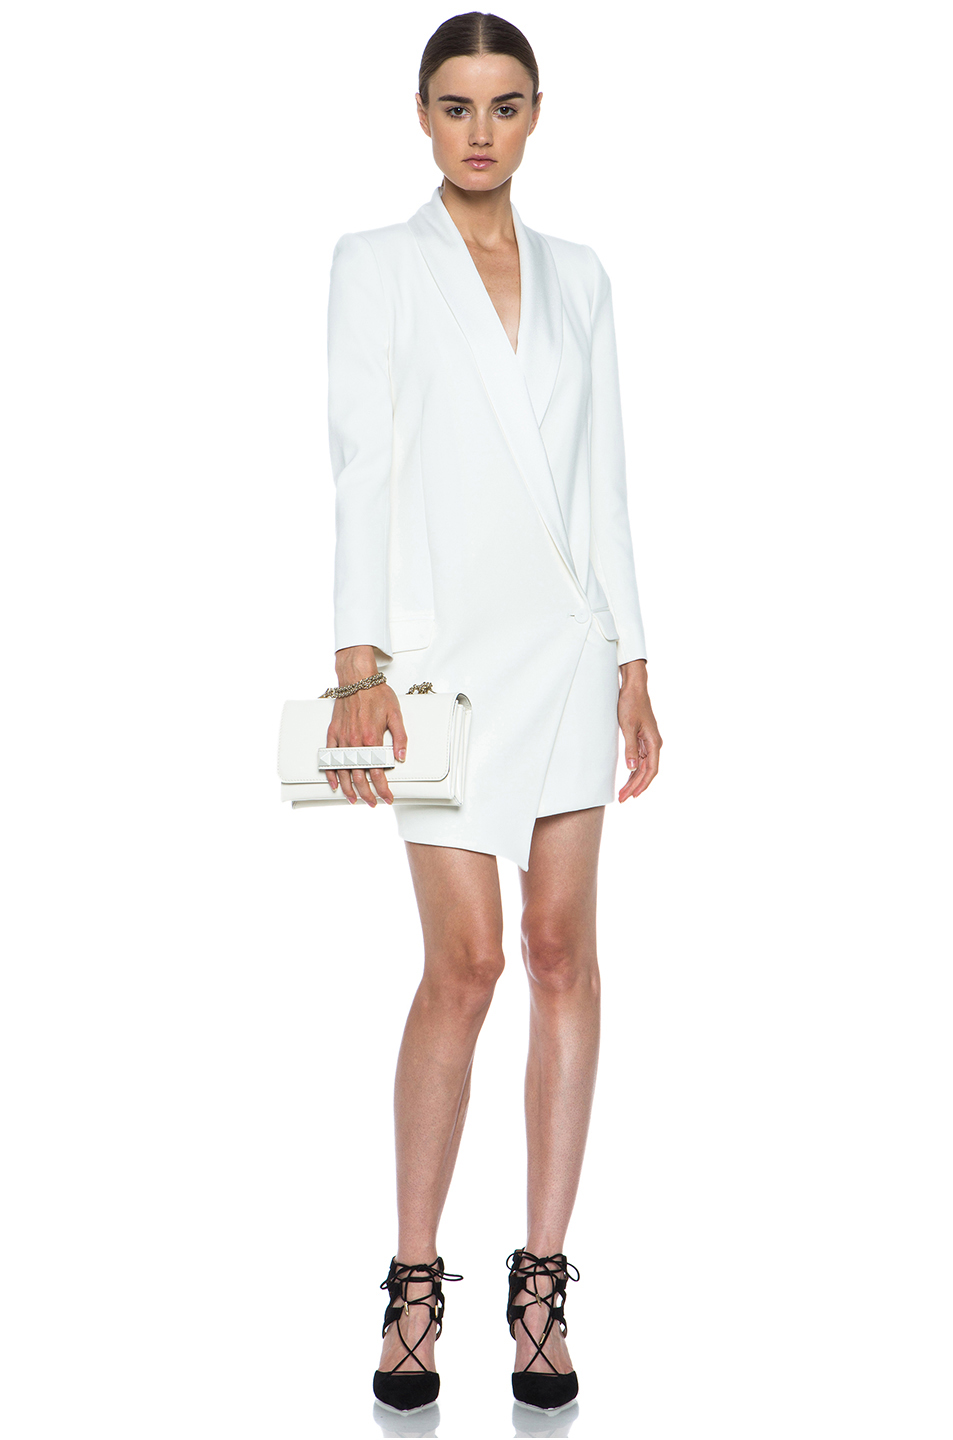 Oversized asymmetrical blazer in antique ivory